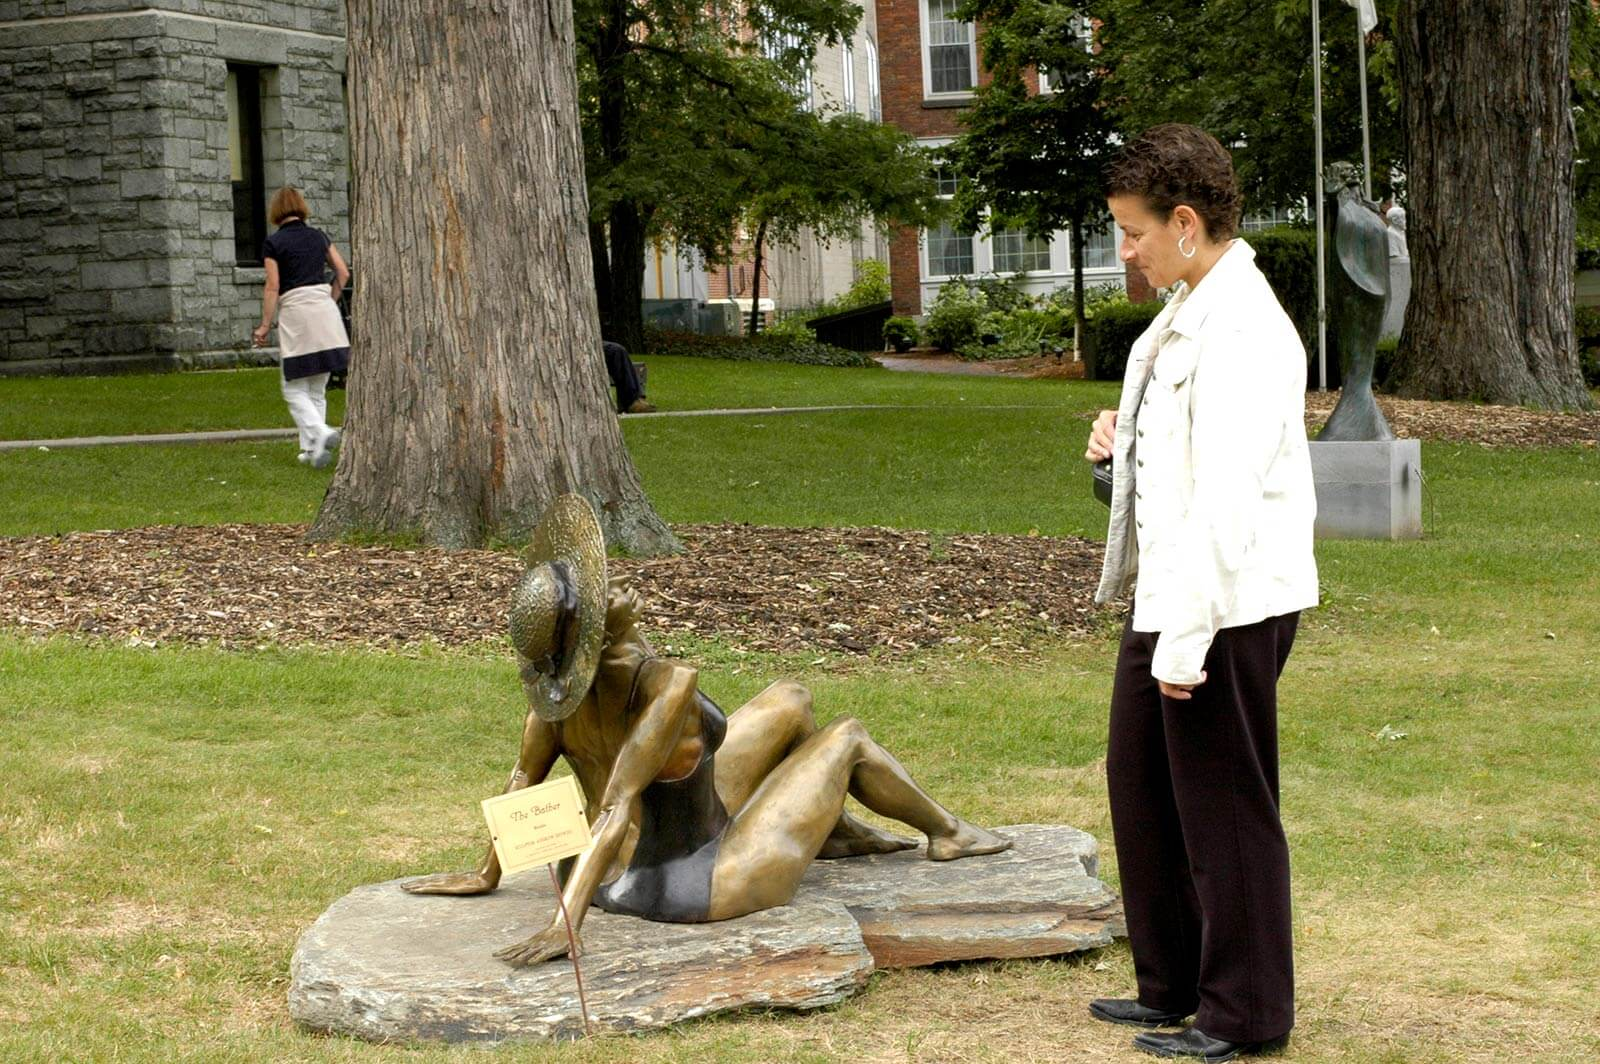 Bronze Bather sculpture by sculptor Andrew deVries in Northhampton MA